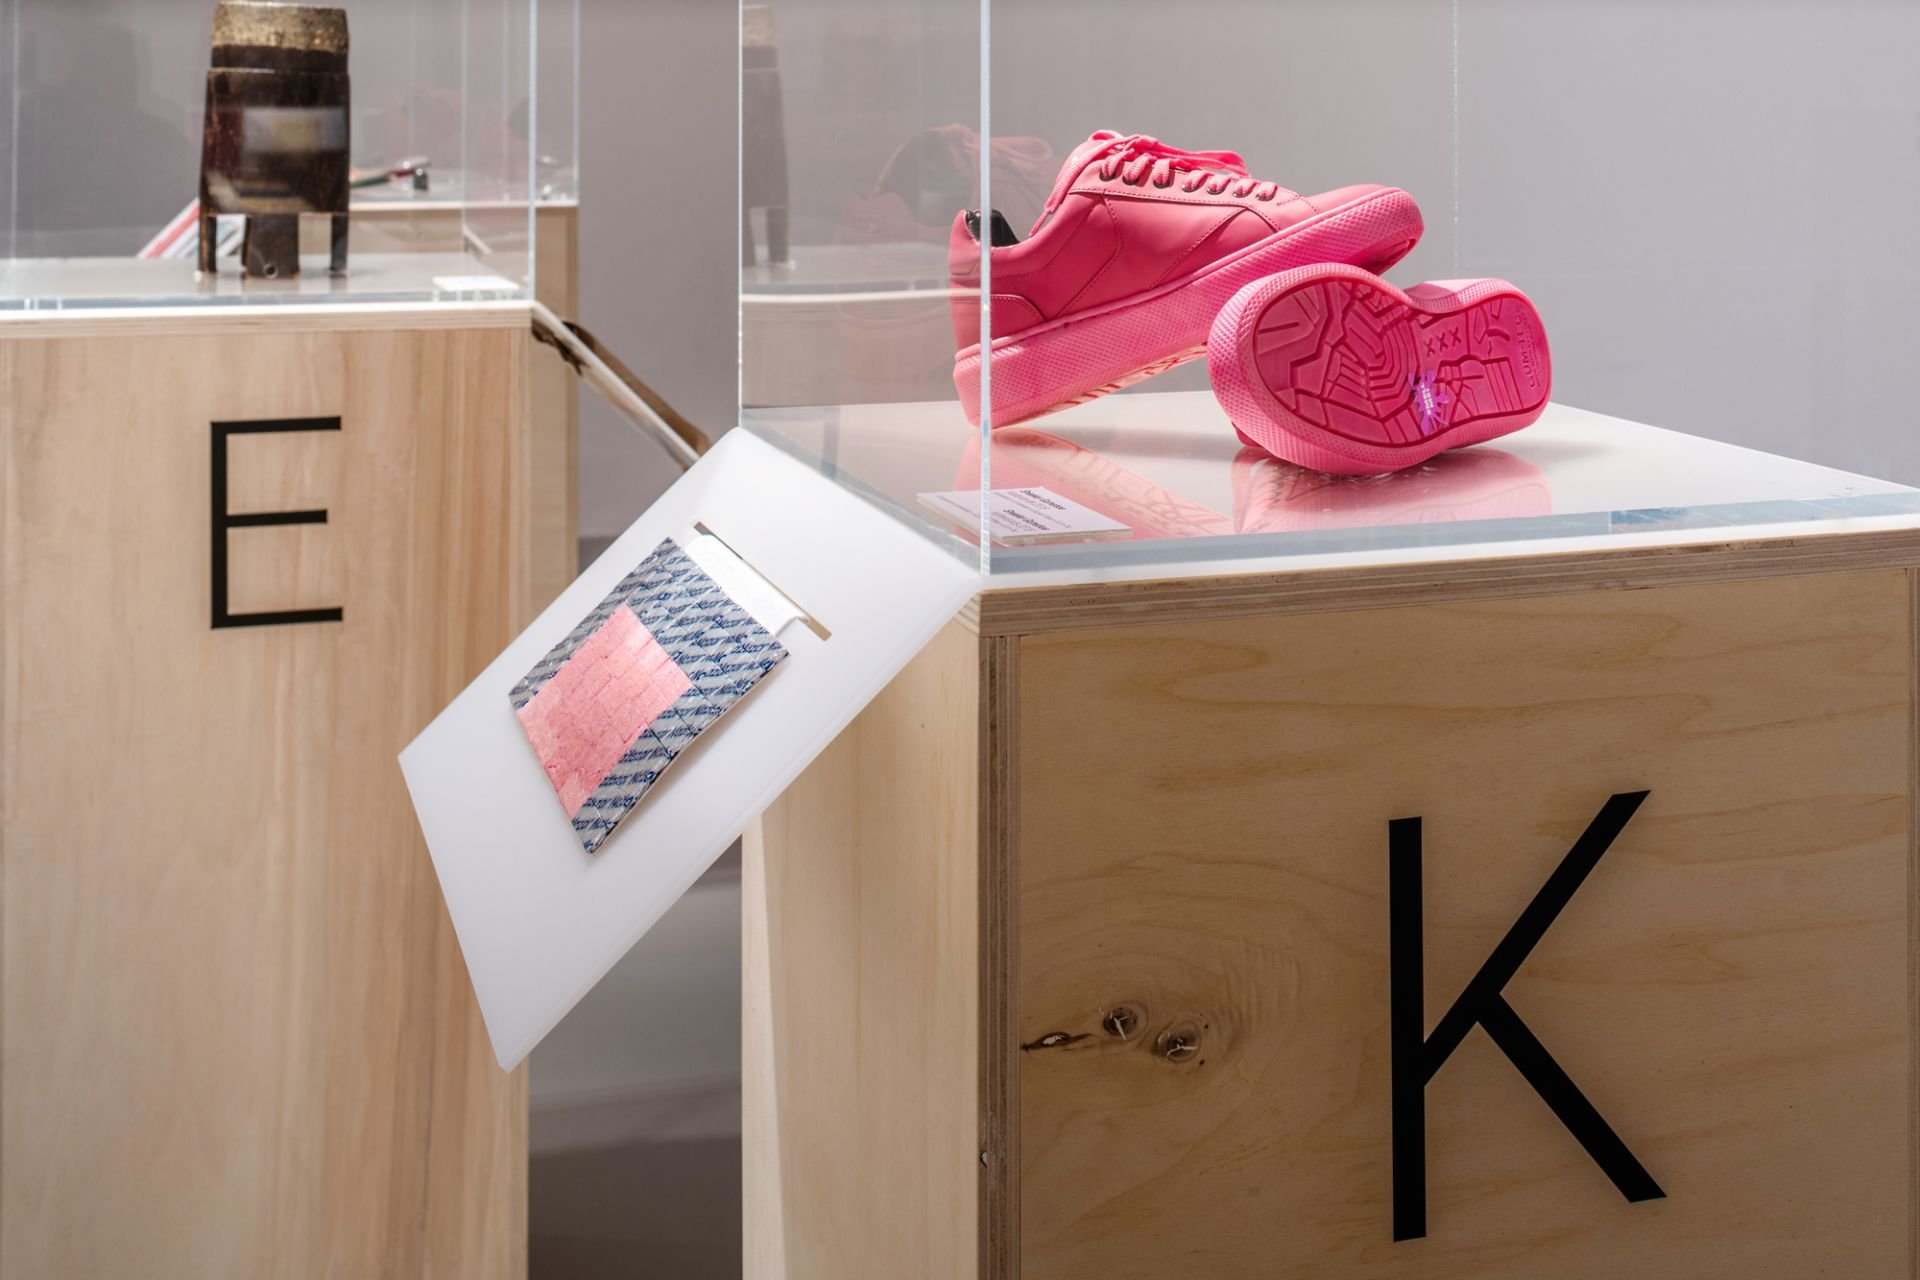 Sneaker Gumshoe with a sole made of recycled gum, Cooperation between I amsterdam x Explicit Wear x Gum-Tec, Netherlands, 2018